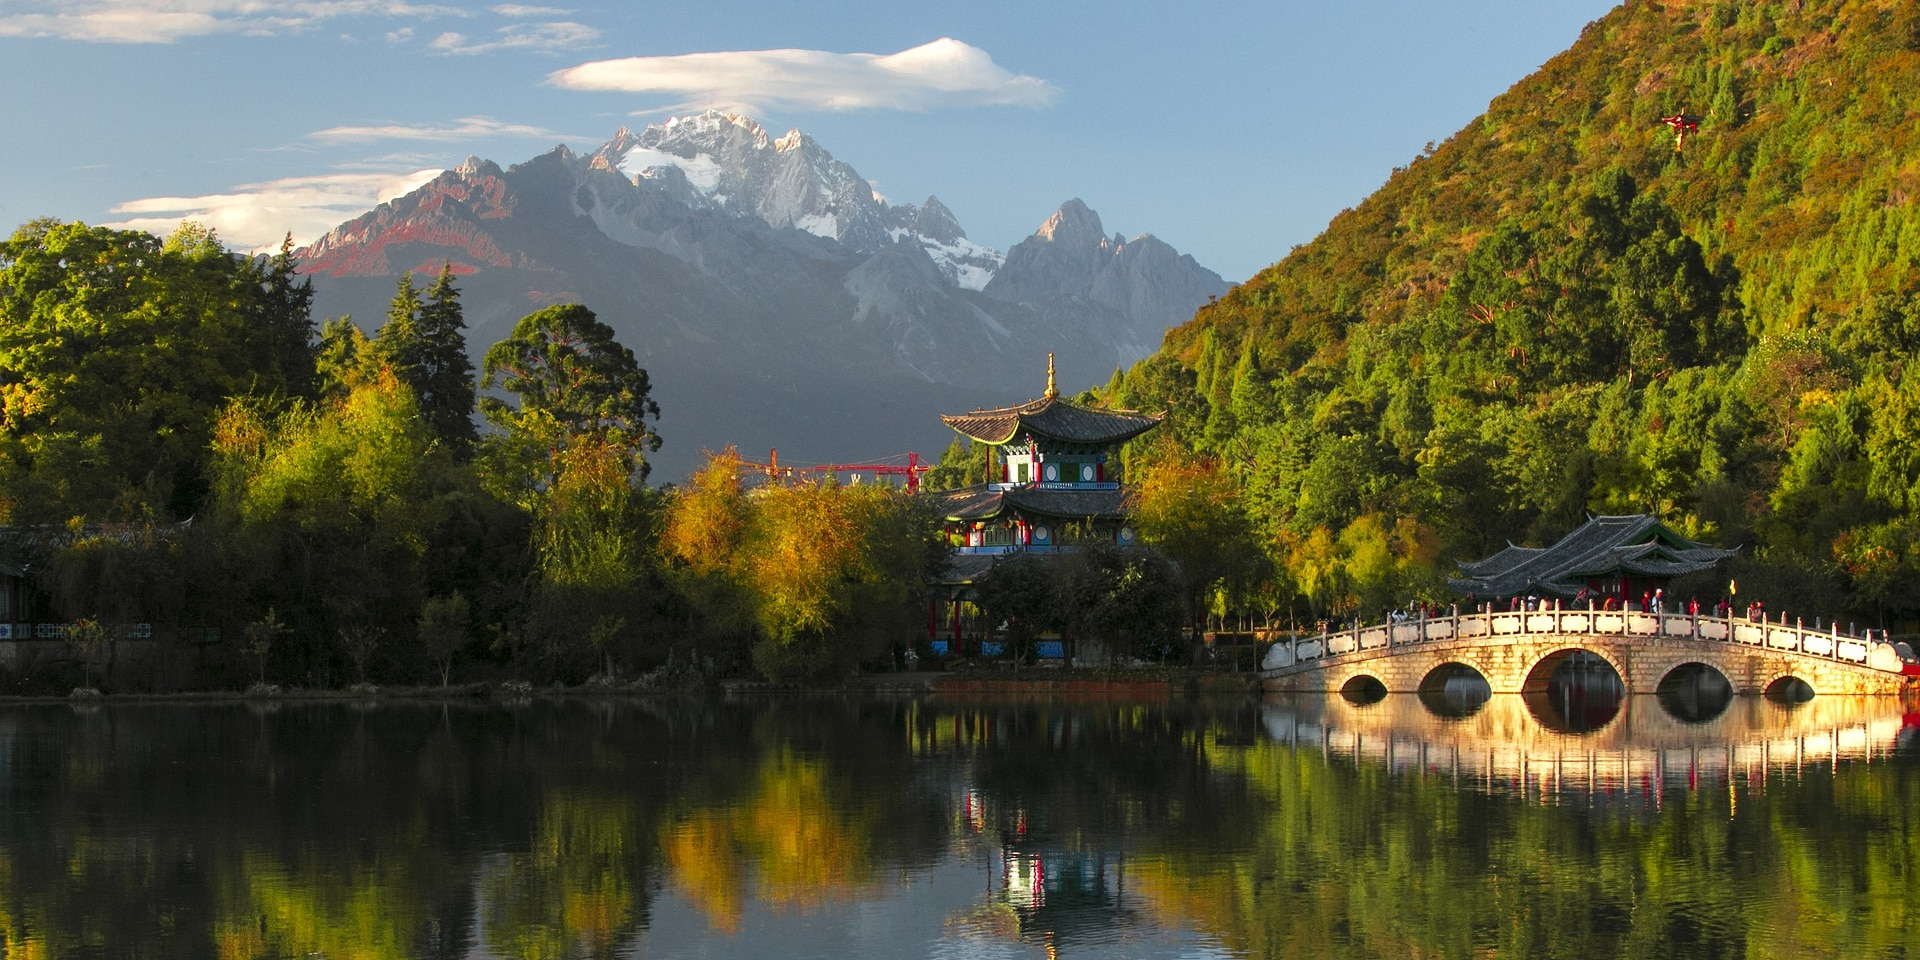 View of Jade Dragon Snow Mountain from Lijiang.